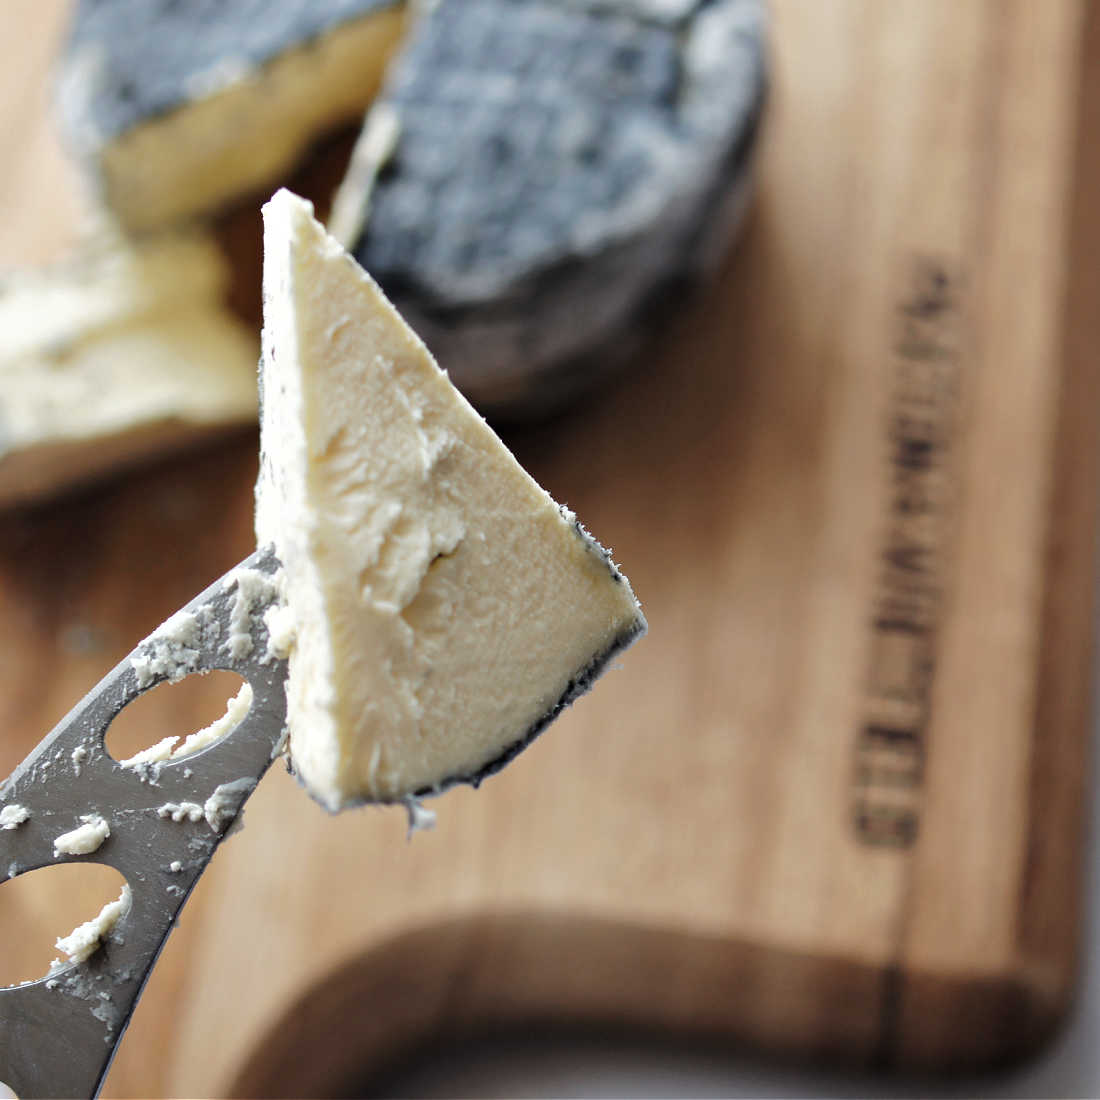 Lypiatt-on-cheese-knife-low-res